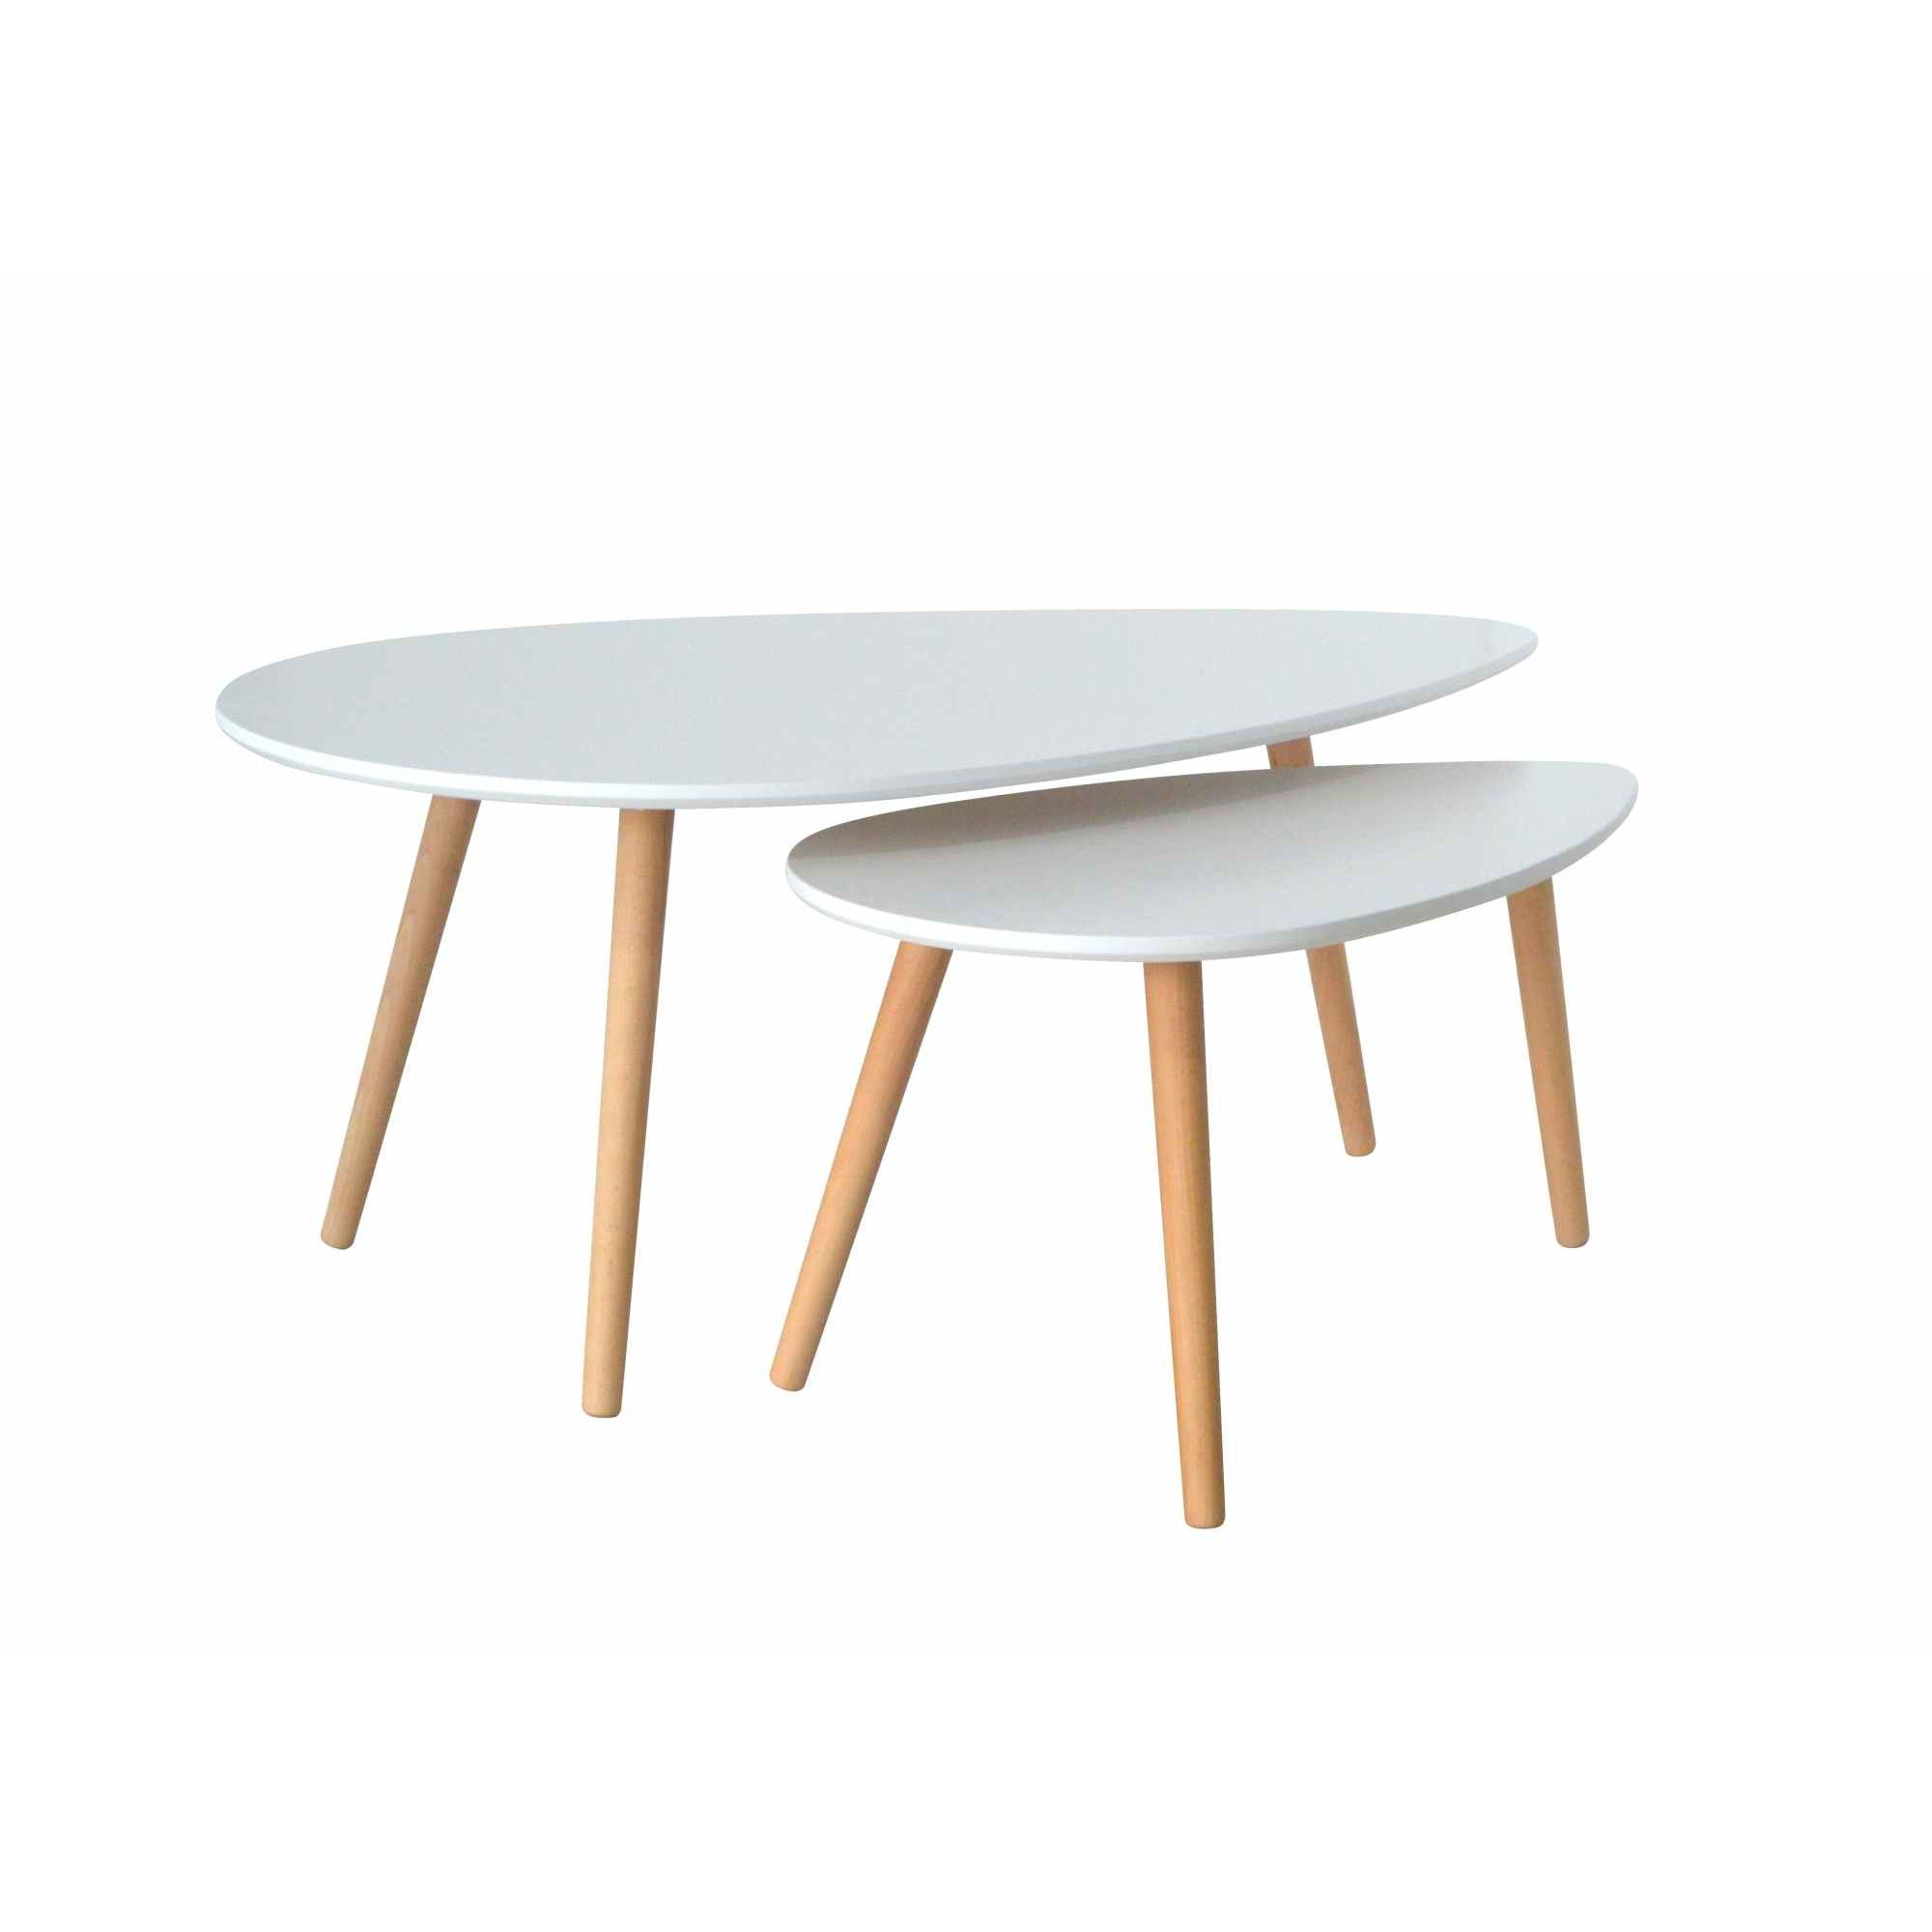 deco in paris table basse scandinave blanc avesta avesta table base blanc